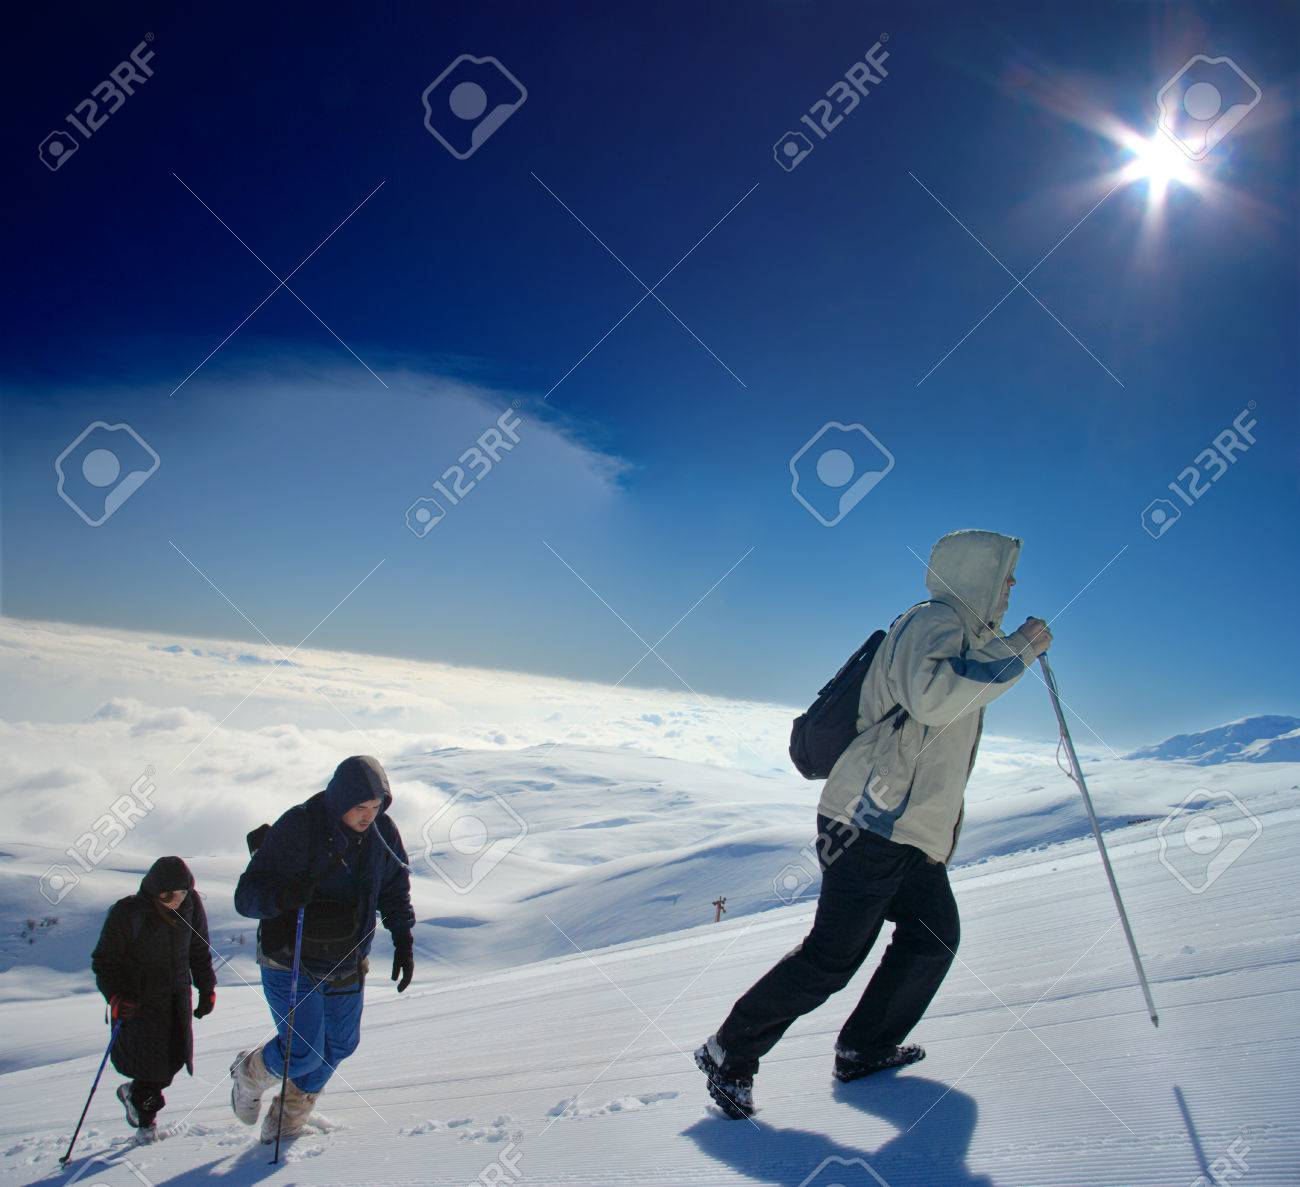 Alpine expedition climbing Mt. Sar Planina in Macedonia Stock Photo - 1406356